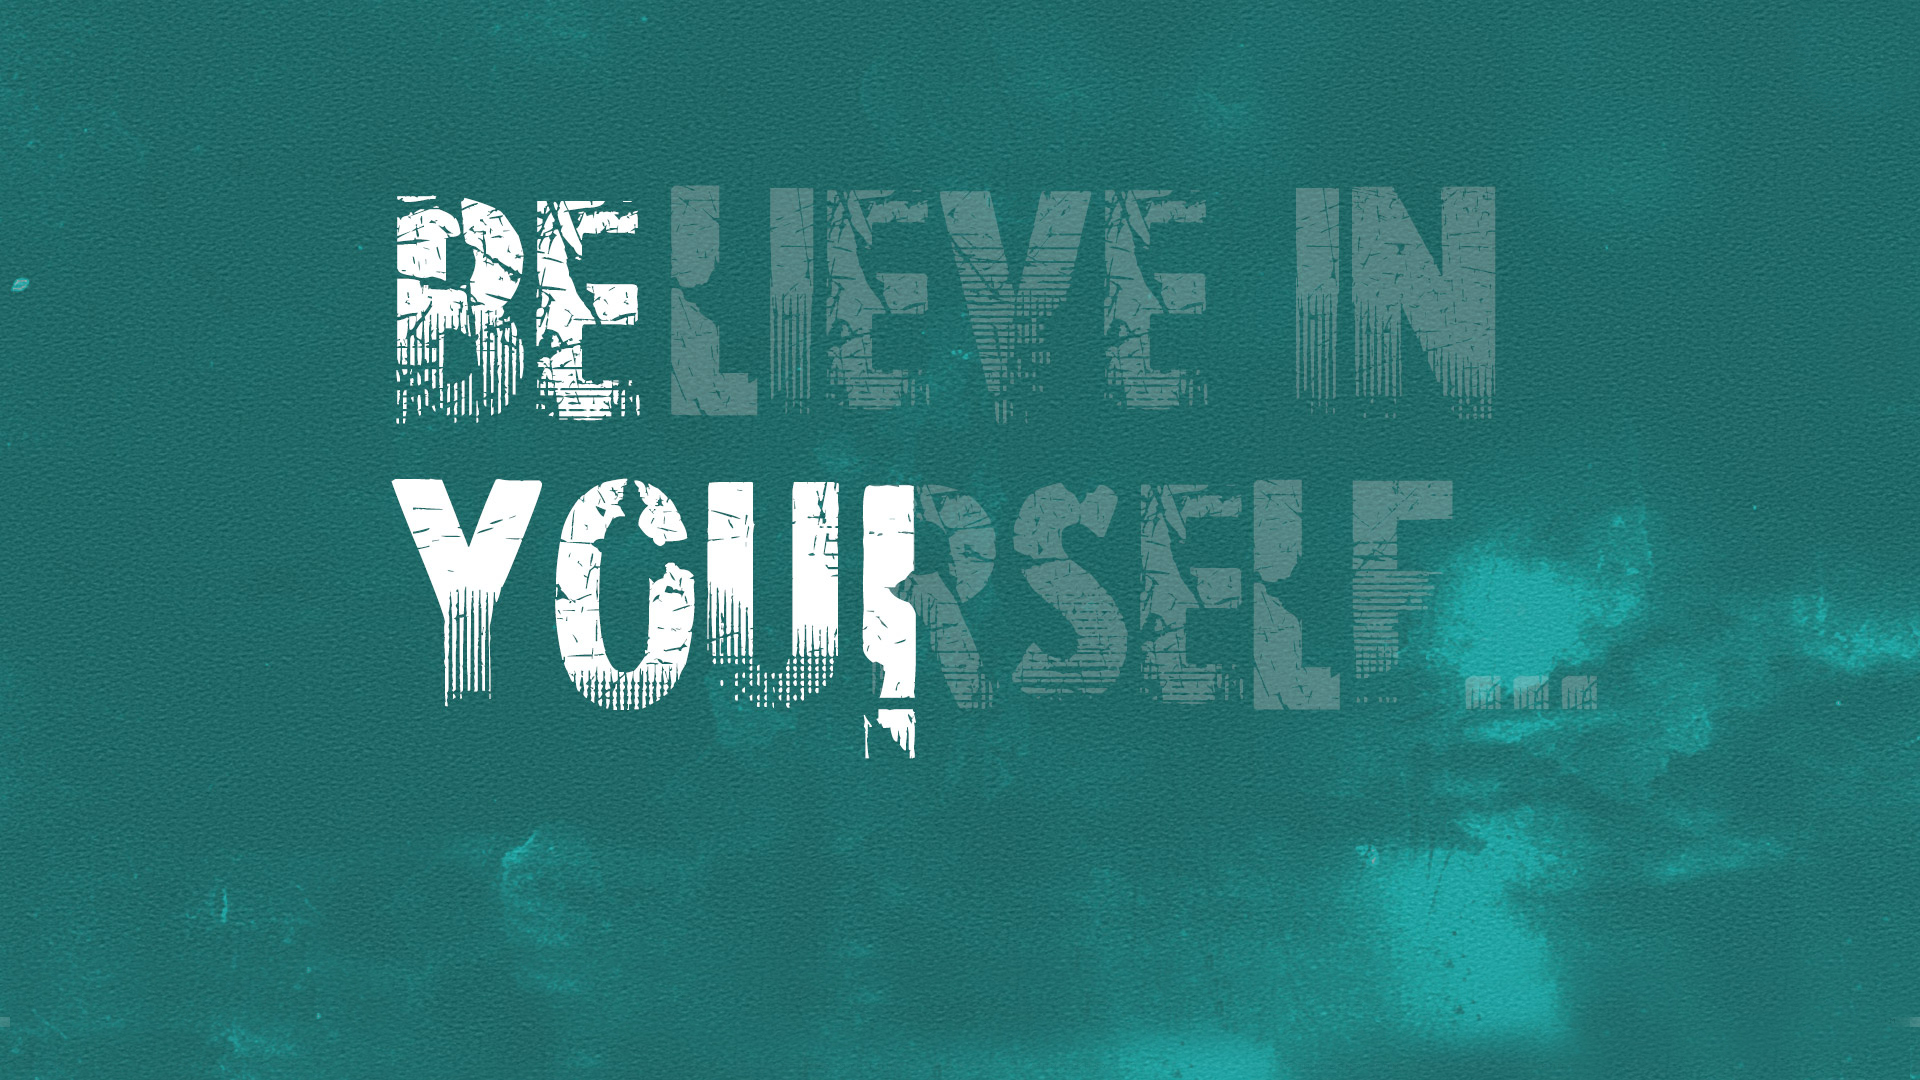 35 Amazing HD Motivational Wallpaper for Your Desktop 1920x1080